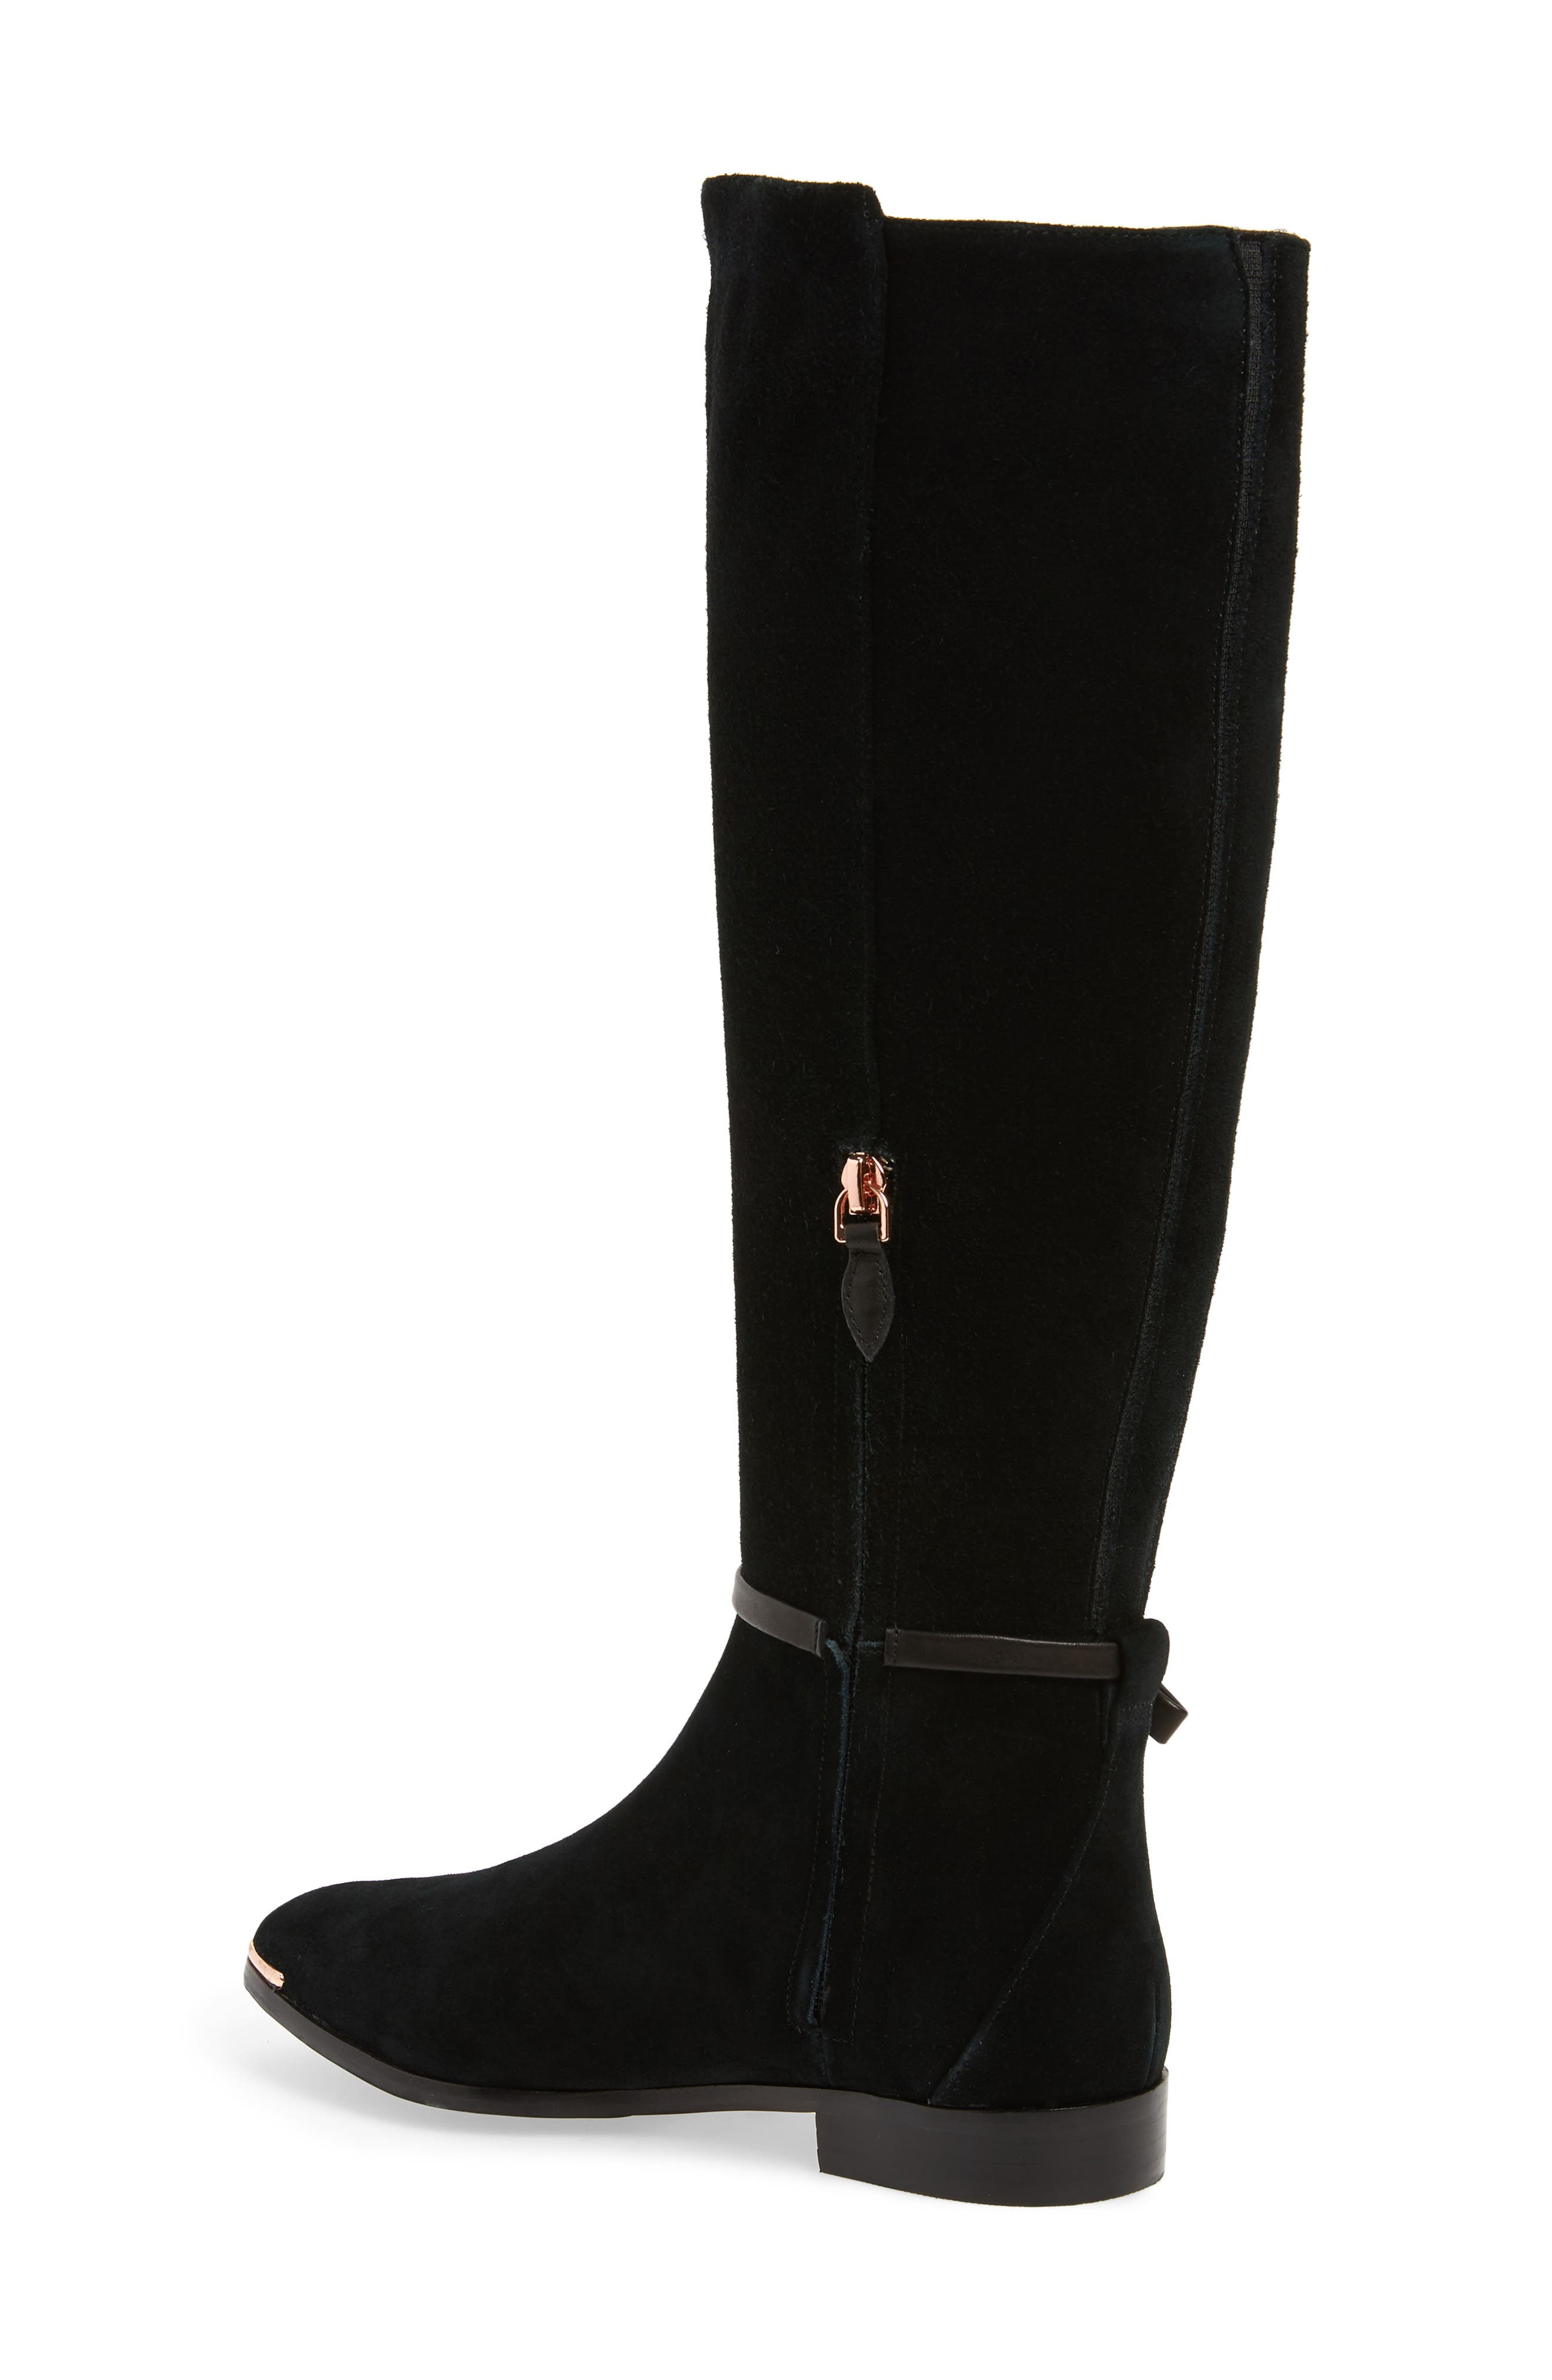 Lykla Knee High Boot,                             Alternate thumbnail 2, color,                             BLACK SUEDE